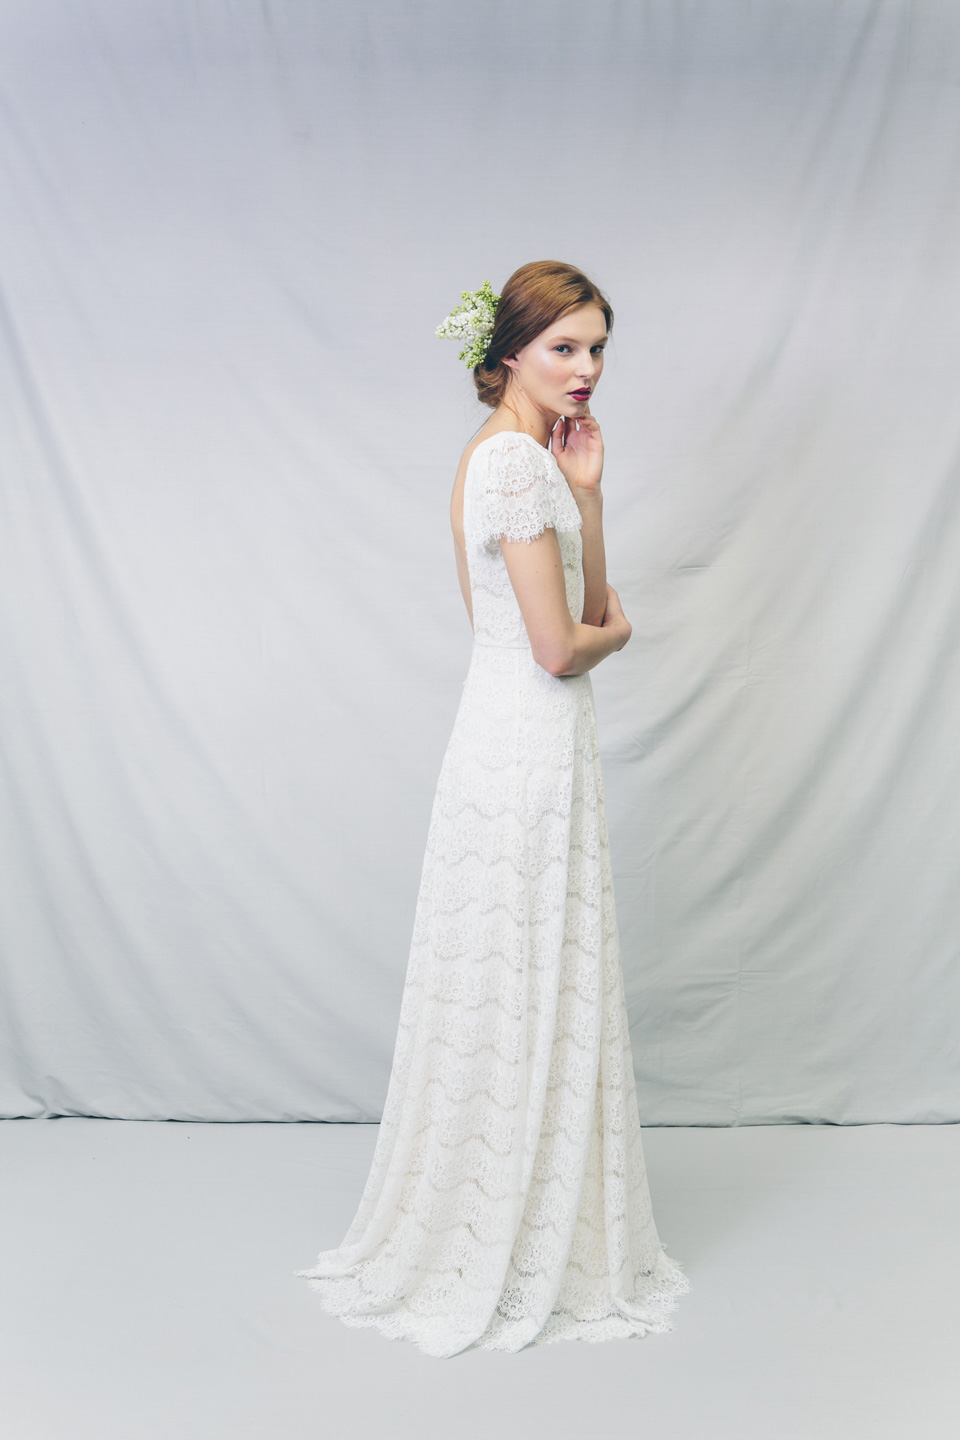 Introducing Kate Beaumont – Designer & Maker Of Elegant Wedding Gowns With A Vintage Twist (Bridal Fashion Fashion & Beauty Get Inspired Supplier Spotlight )